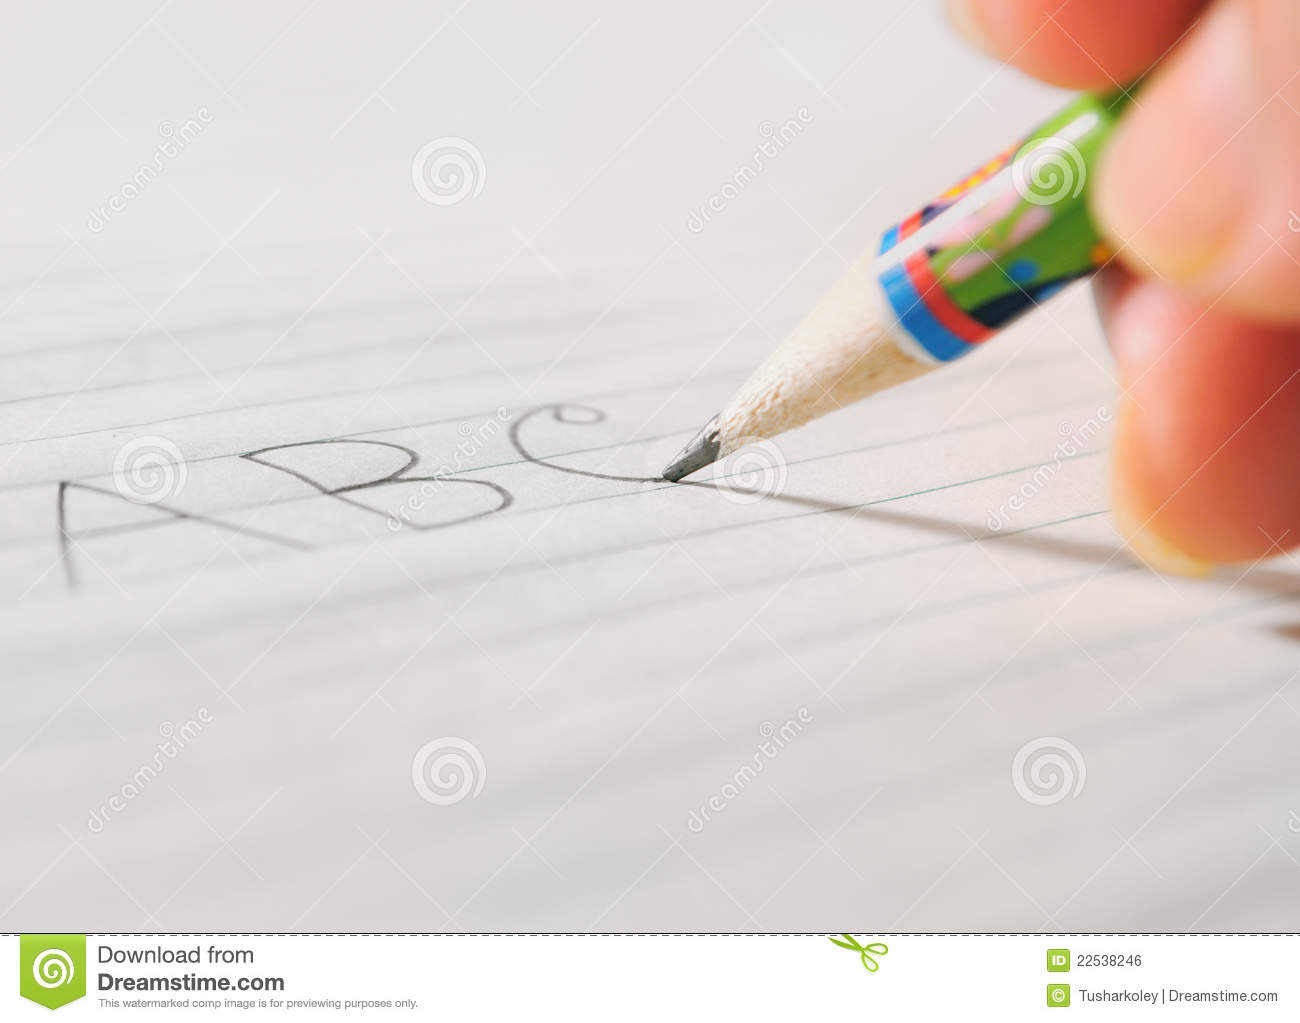 writing on a paper by a pencil stock photo - image of drawing